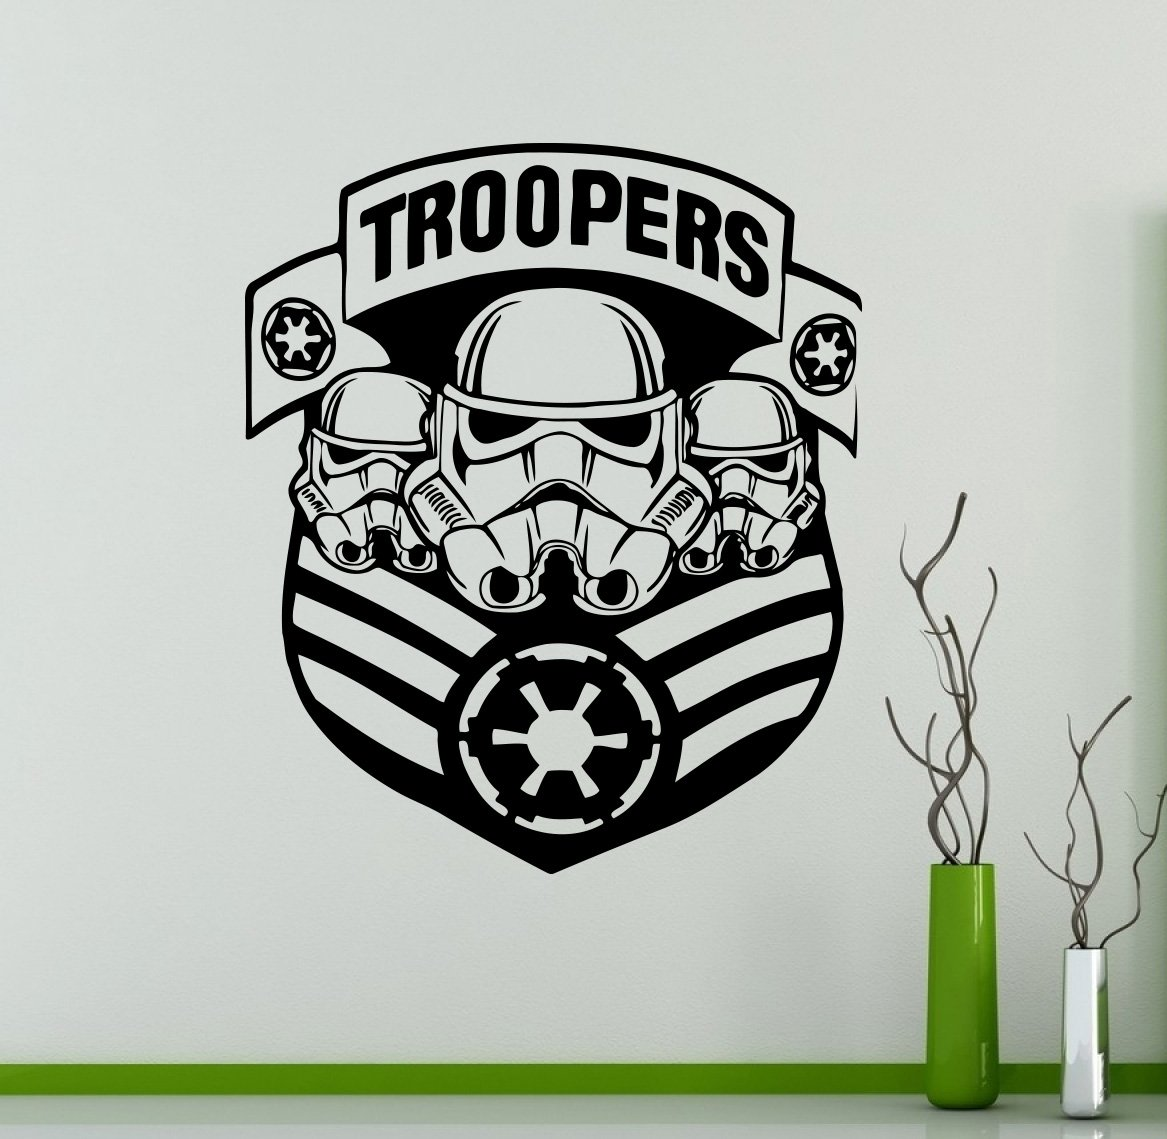 Star wars military badge wall decal stormtrooper vinyl sticker galactic empire home interior decor custom decals 16str amazon com